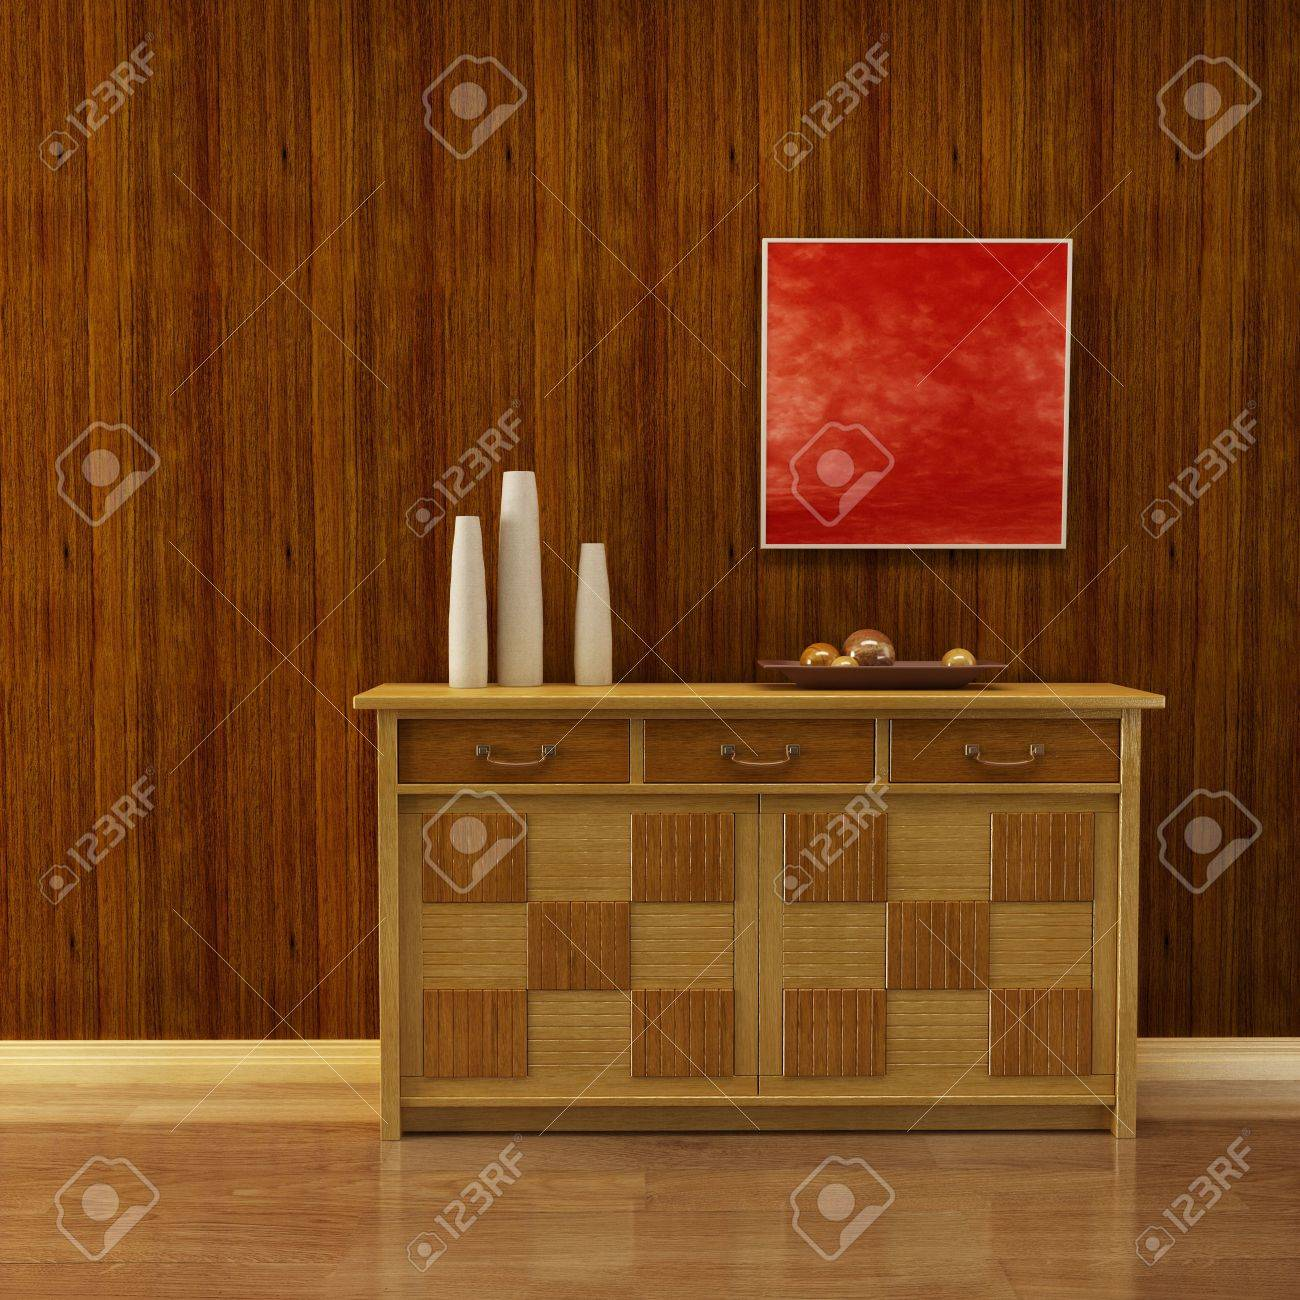 3d interior with classic cupboard beside wooden wall Stock Photo - 2119164